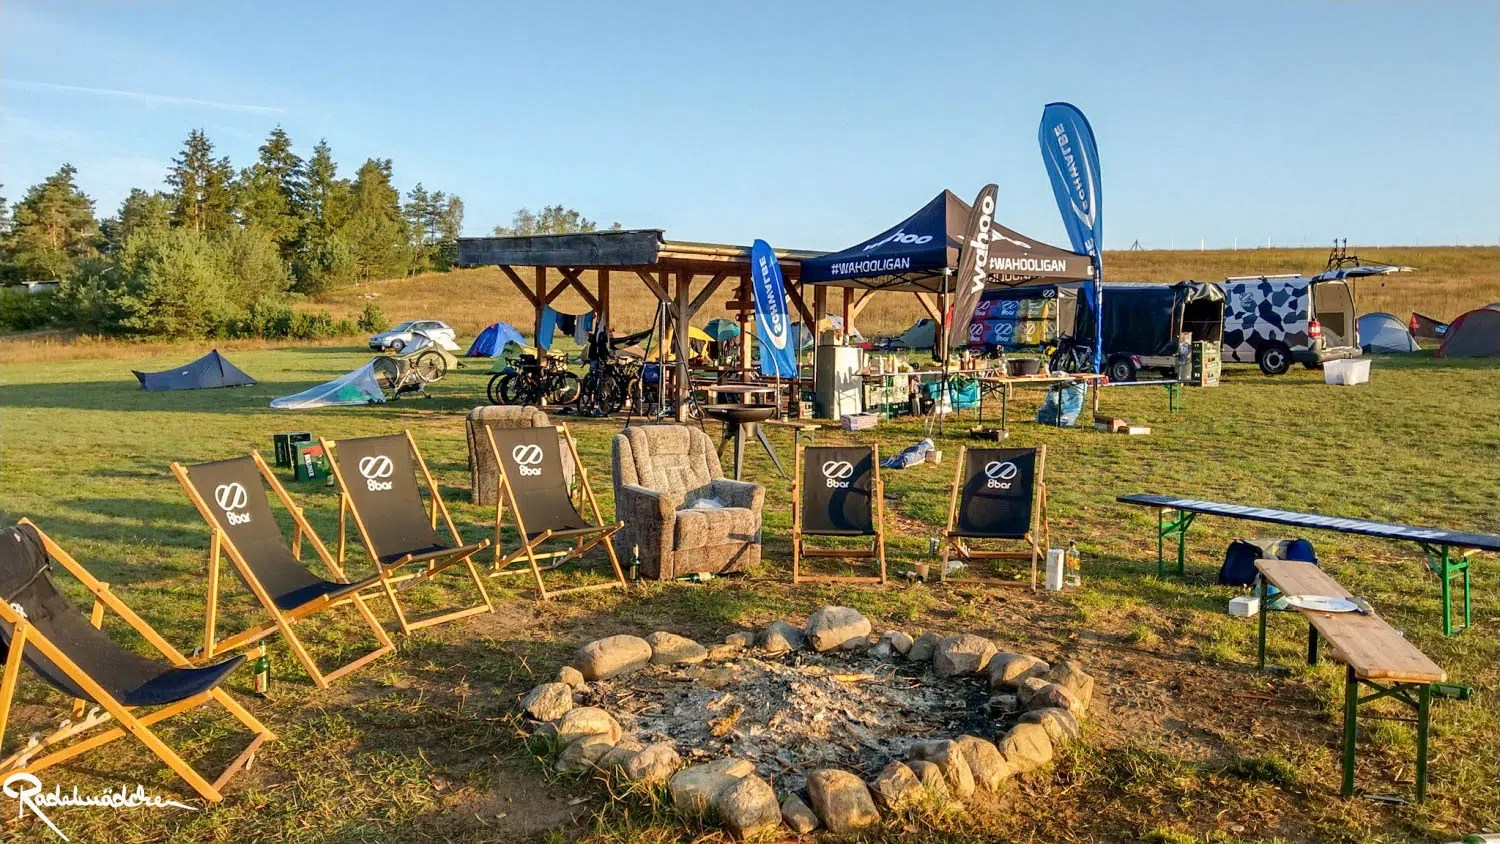 campsite with firepit and chairs